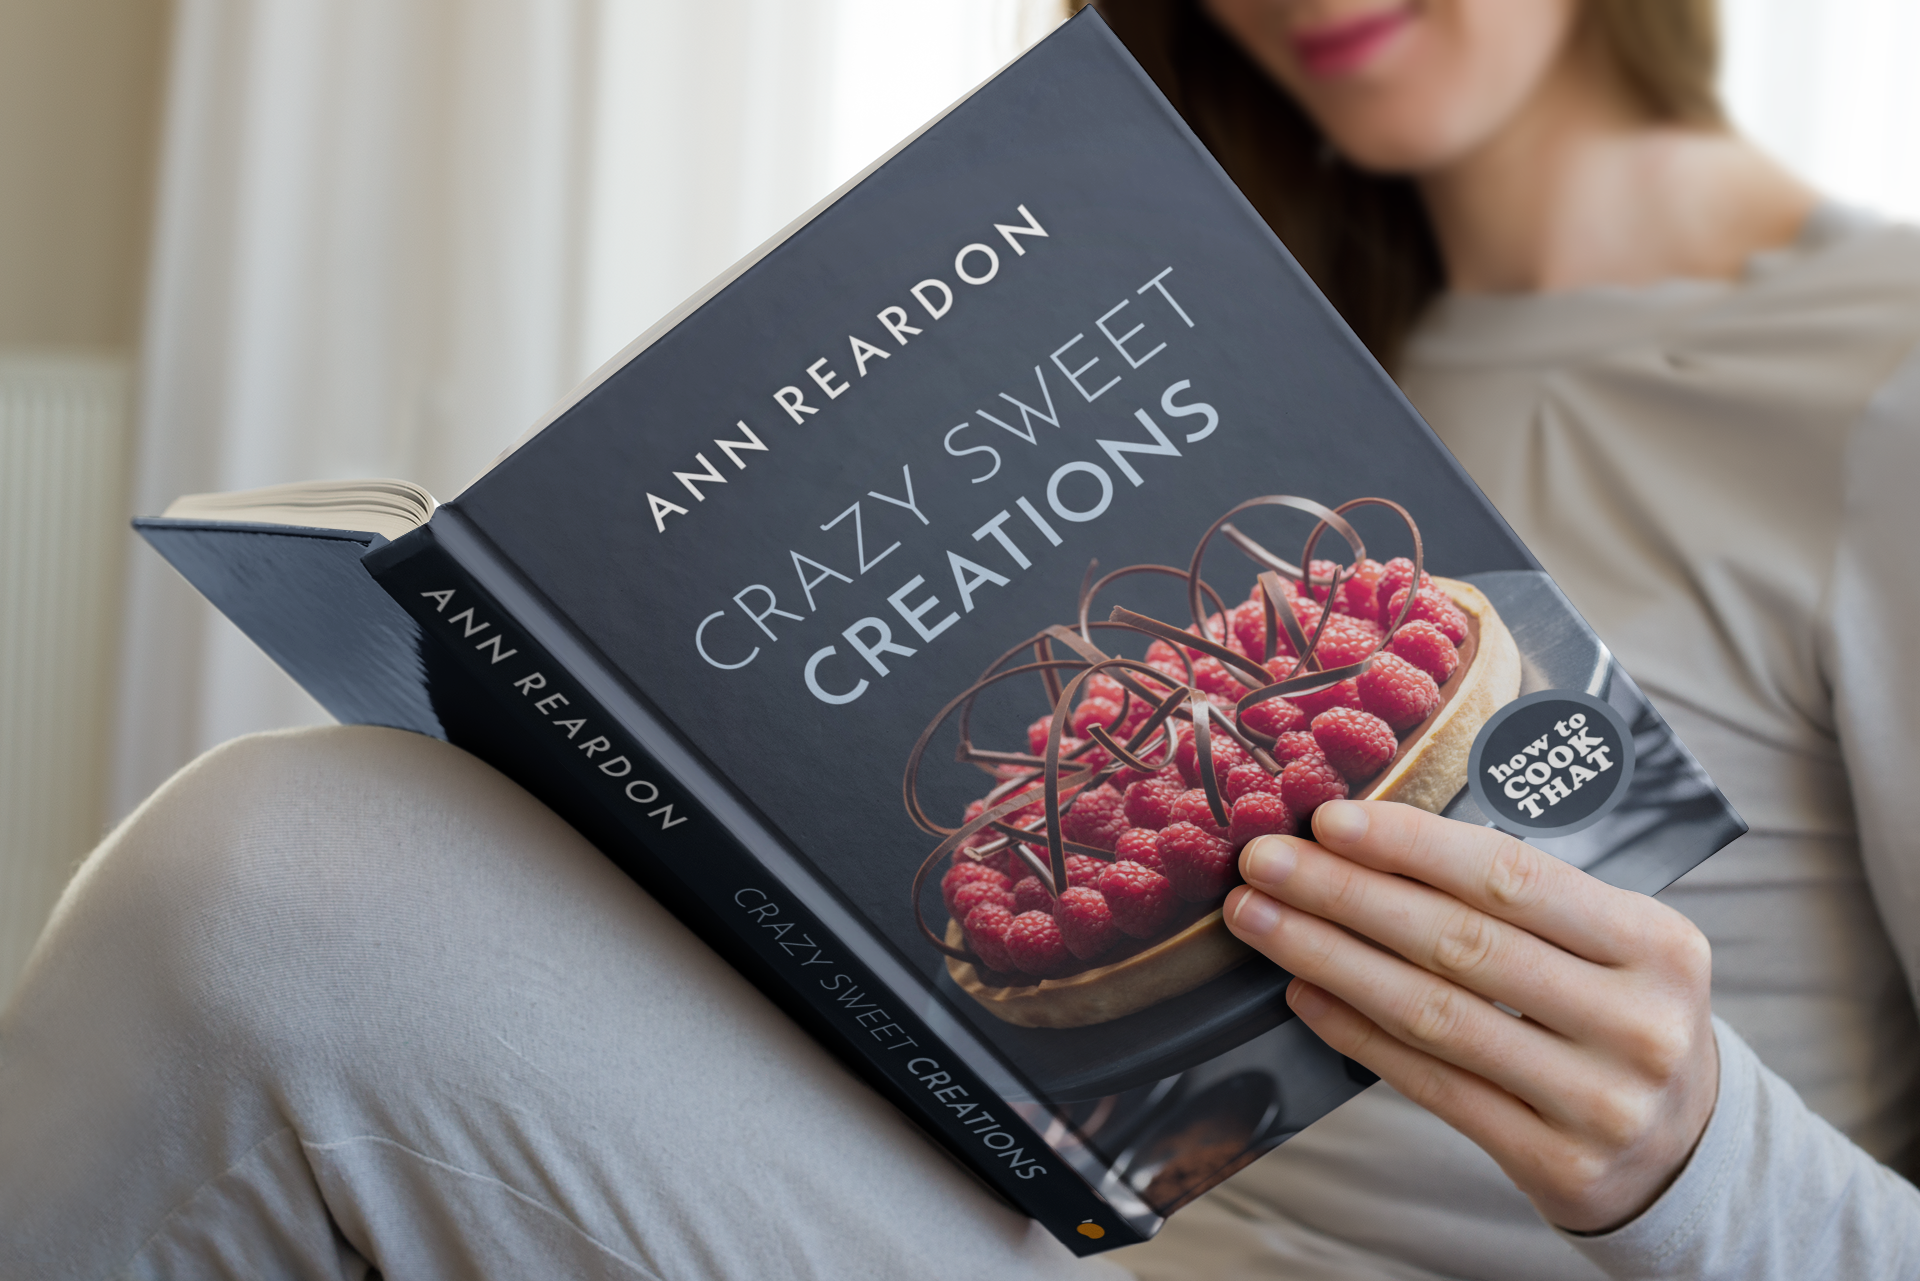 ann reardon crazy sweet creations cookbook